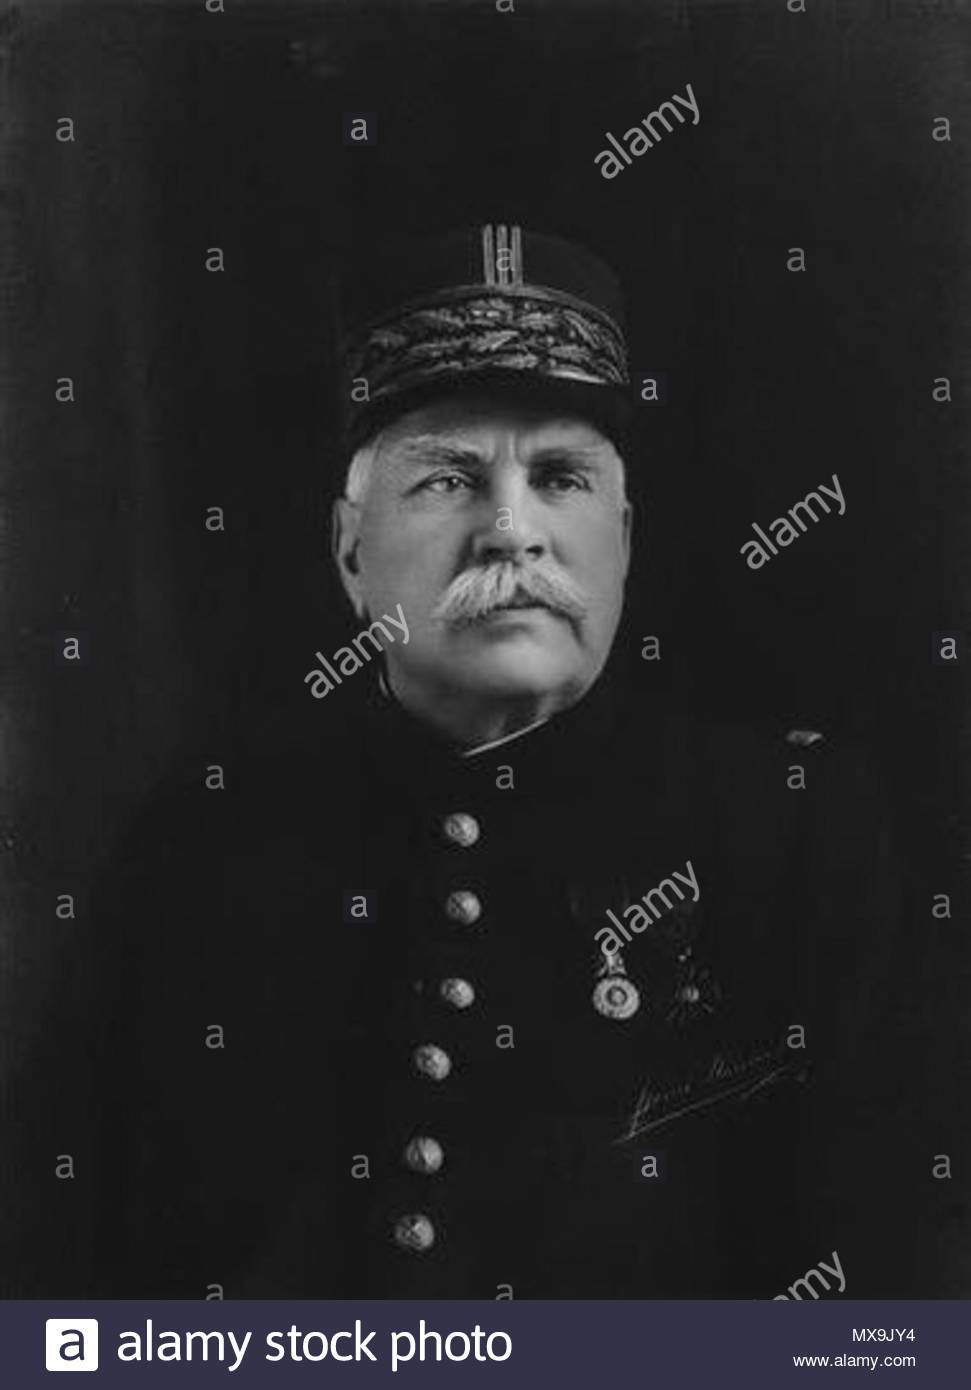 . English: Joseph Joffre . 30 October 2012, 17:07:52.   Henri Manuel  (1874–1947)    Description French photographer  Date of birth/death 24 April 1874 11 September 1947  Location of birth/death Paris Neuilly-sur-Seine  Work location Paris  Authority control  : Q3131559 VIAF: 69197545 ISNI: 0000 0001 2281 4329 ULAN: 500054098 SUDOC: 091373182 BNF: 14841349b 272 Henri Manuel - Joseph Joffre - Stock Image